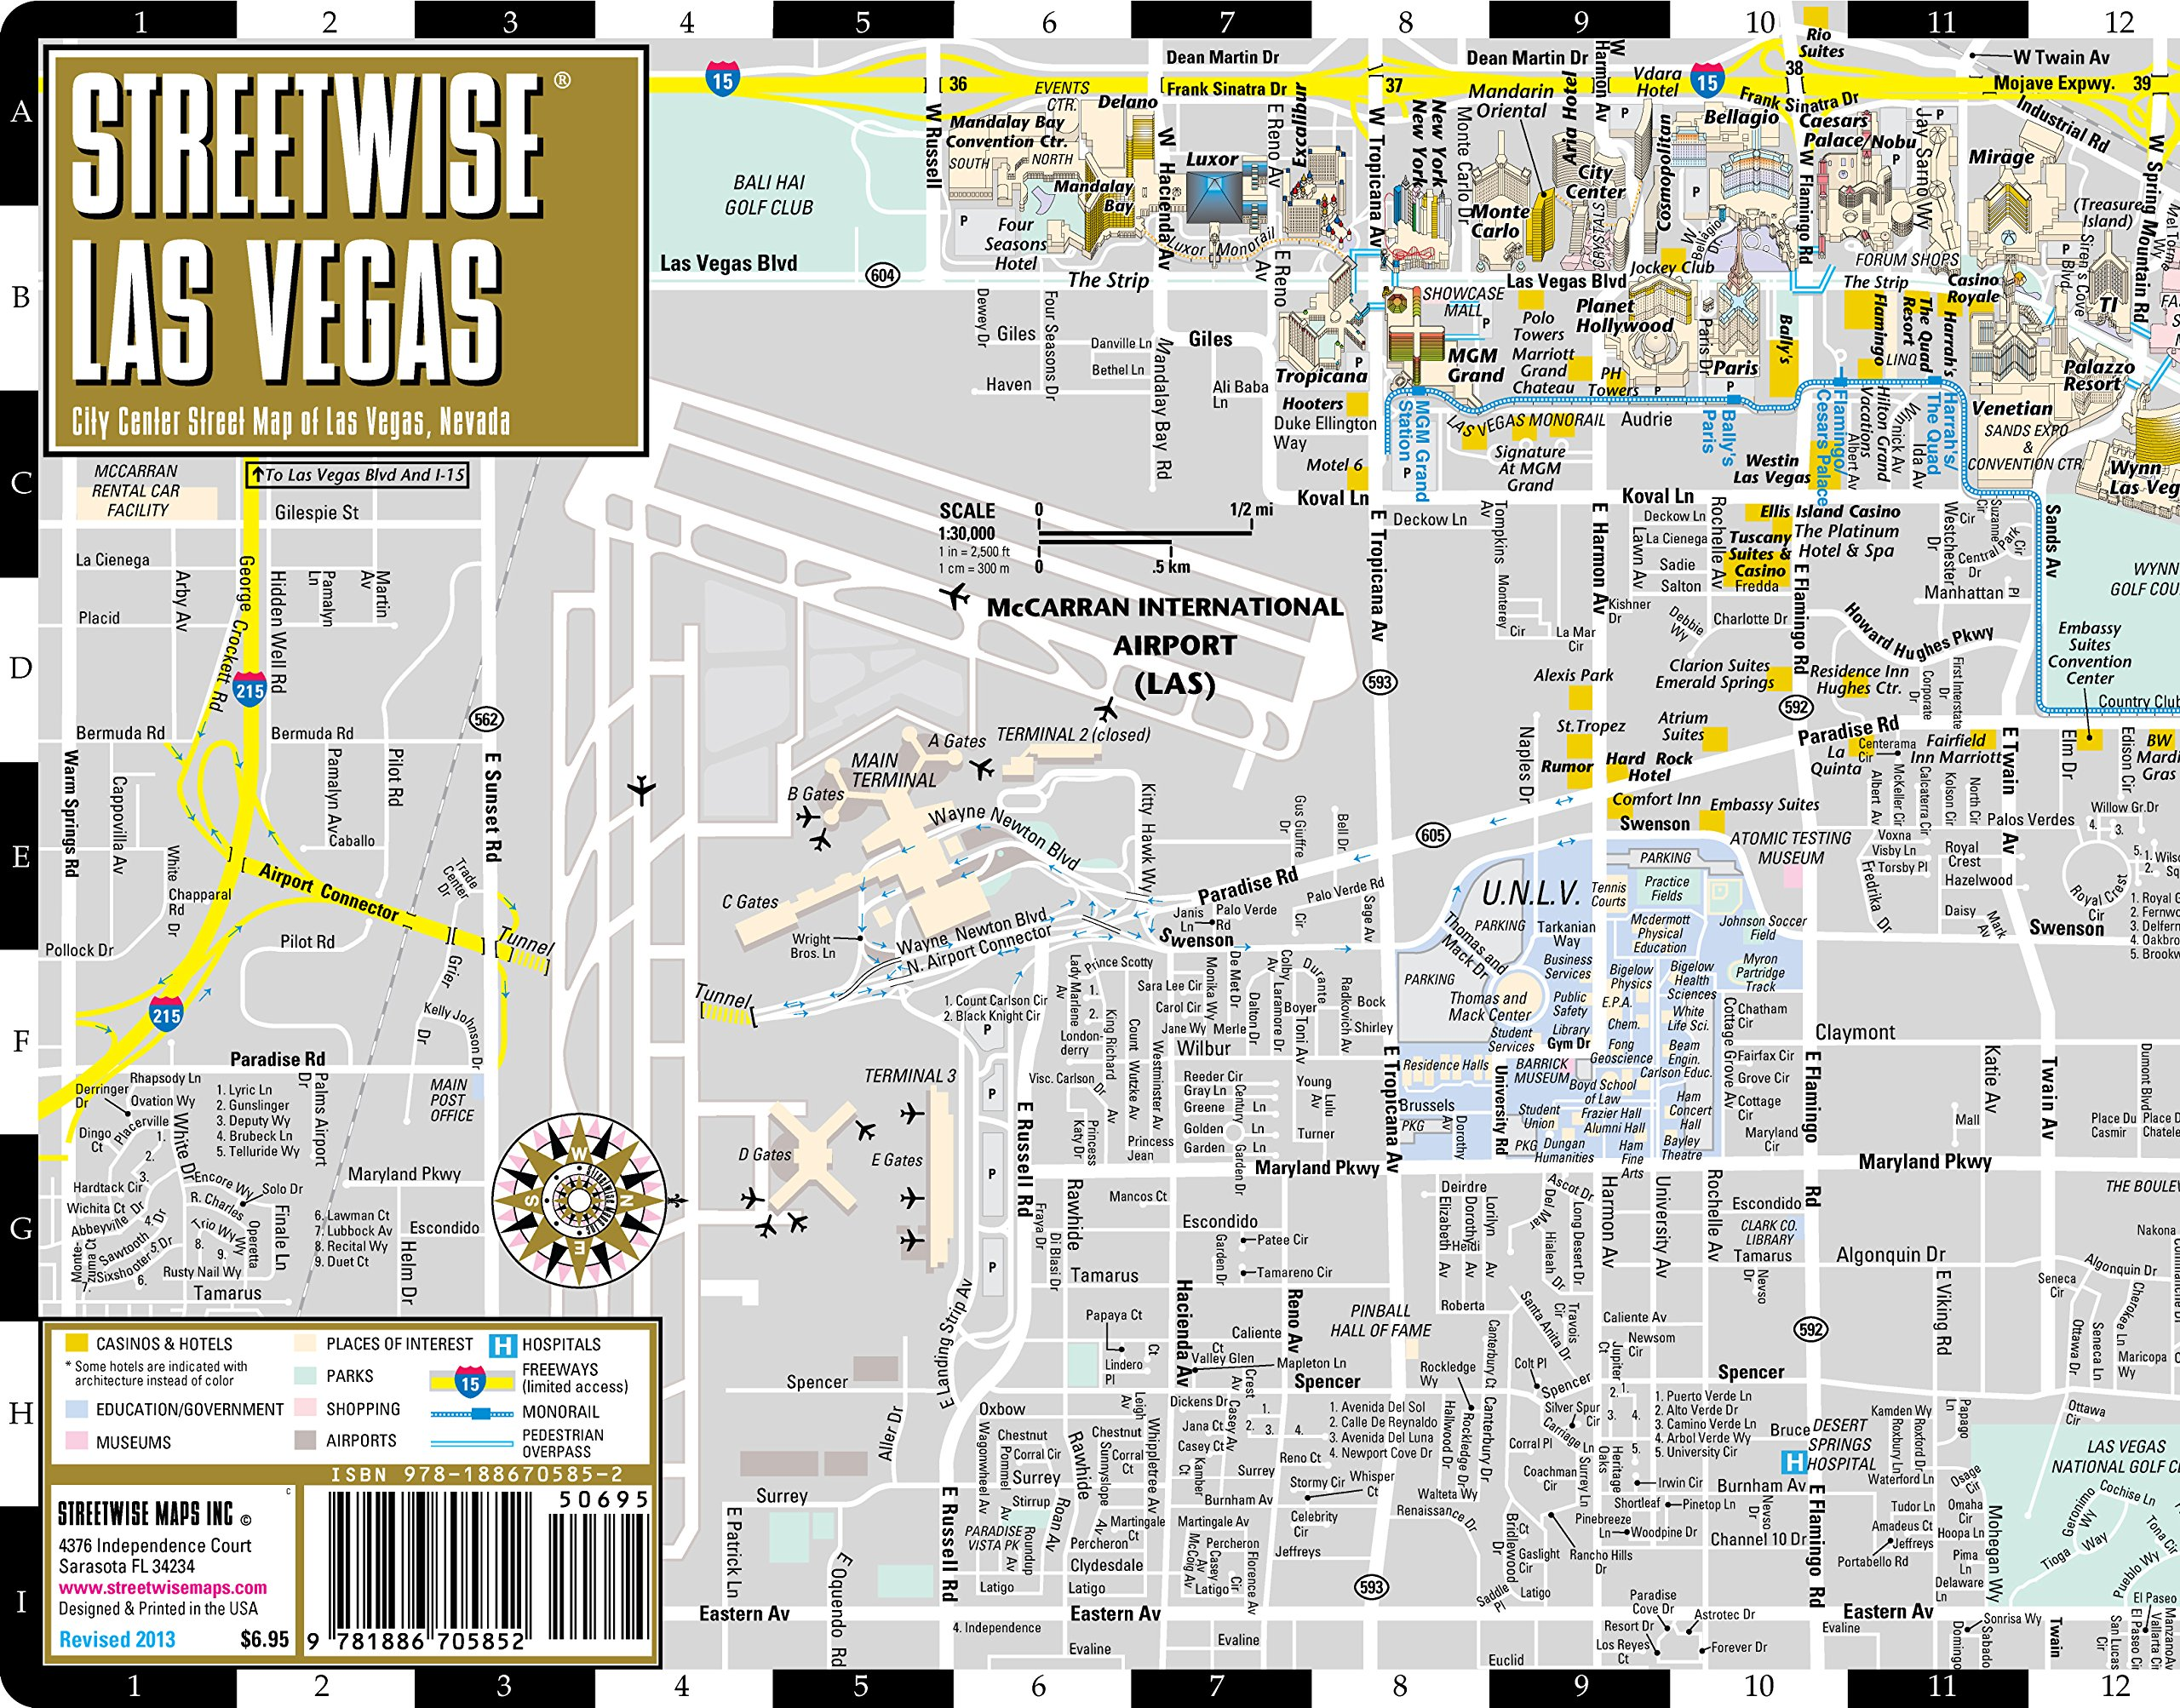 Streetwise Las Vegas Map - Laminated City Center Street Map of Las Vegas,  Nevada: Streetwise Maps: 9781886705852: Amazon.com: Books